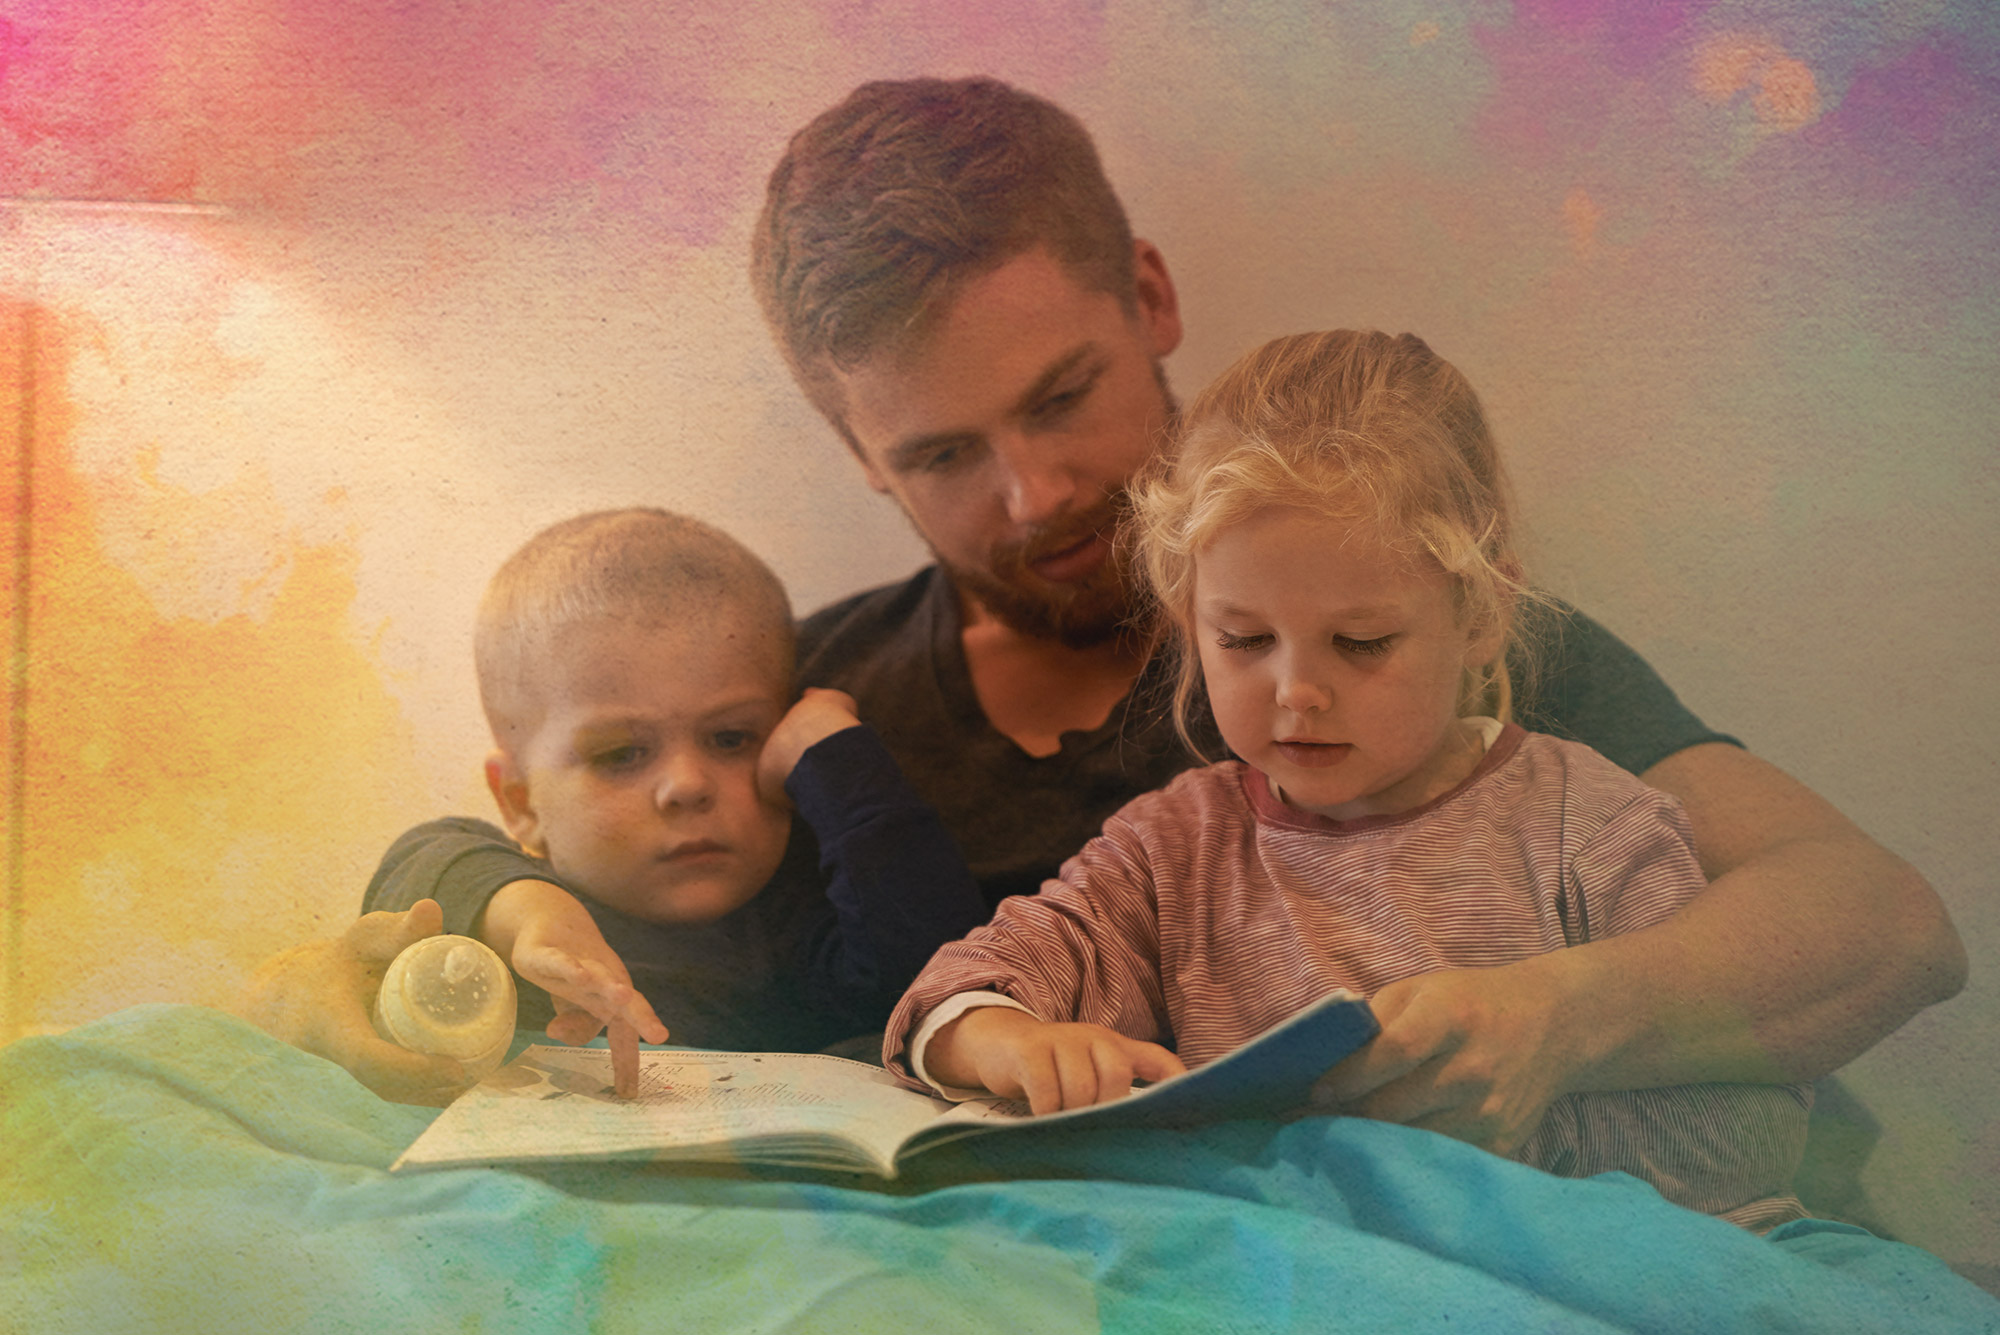 A father reading to his two young children.